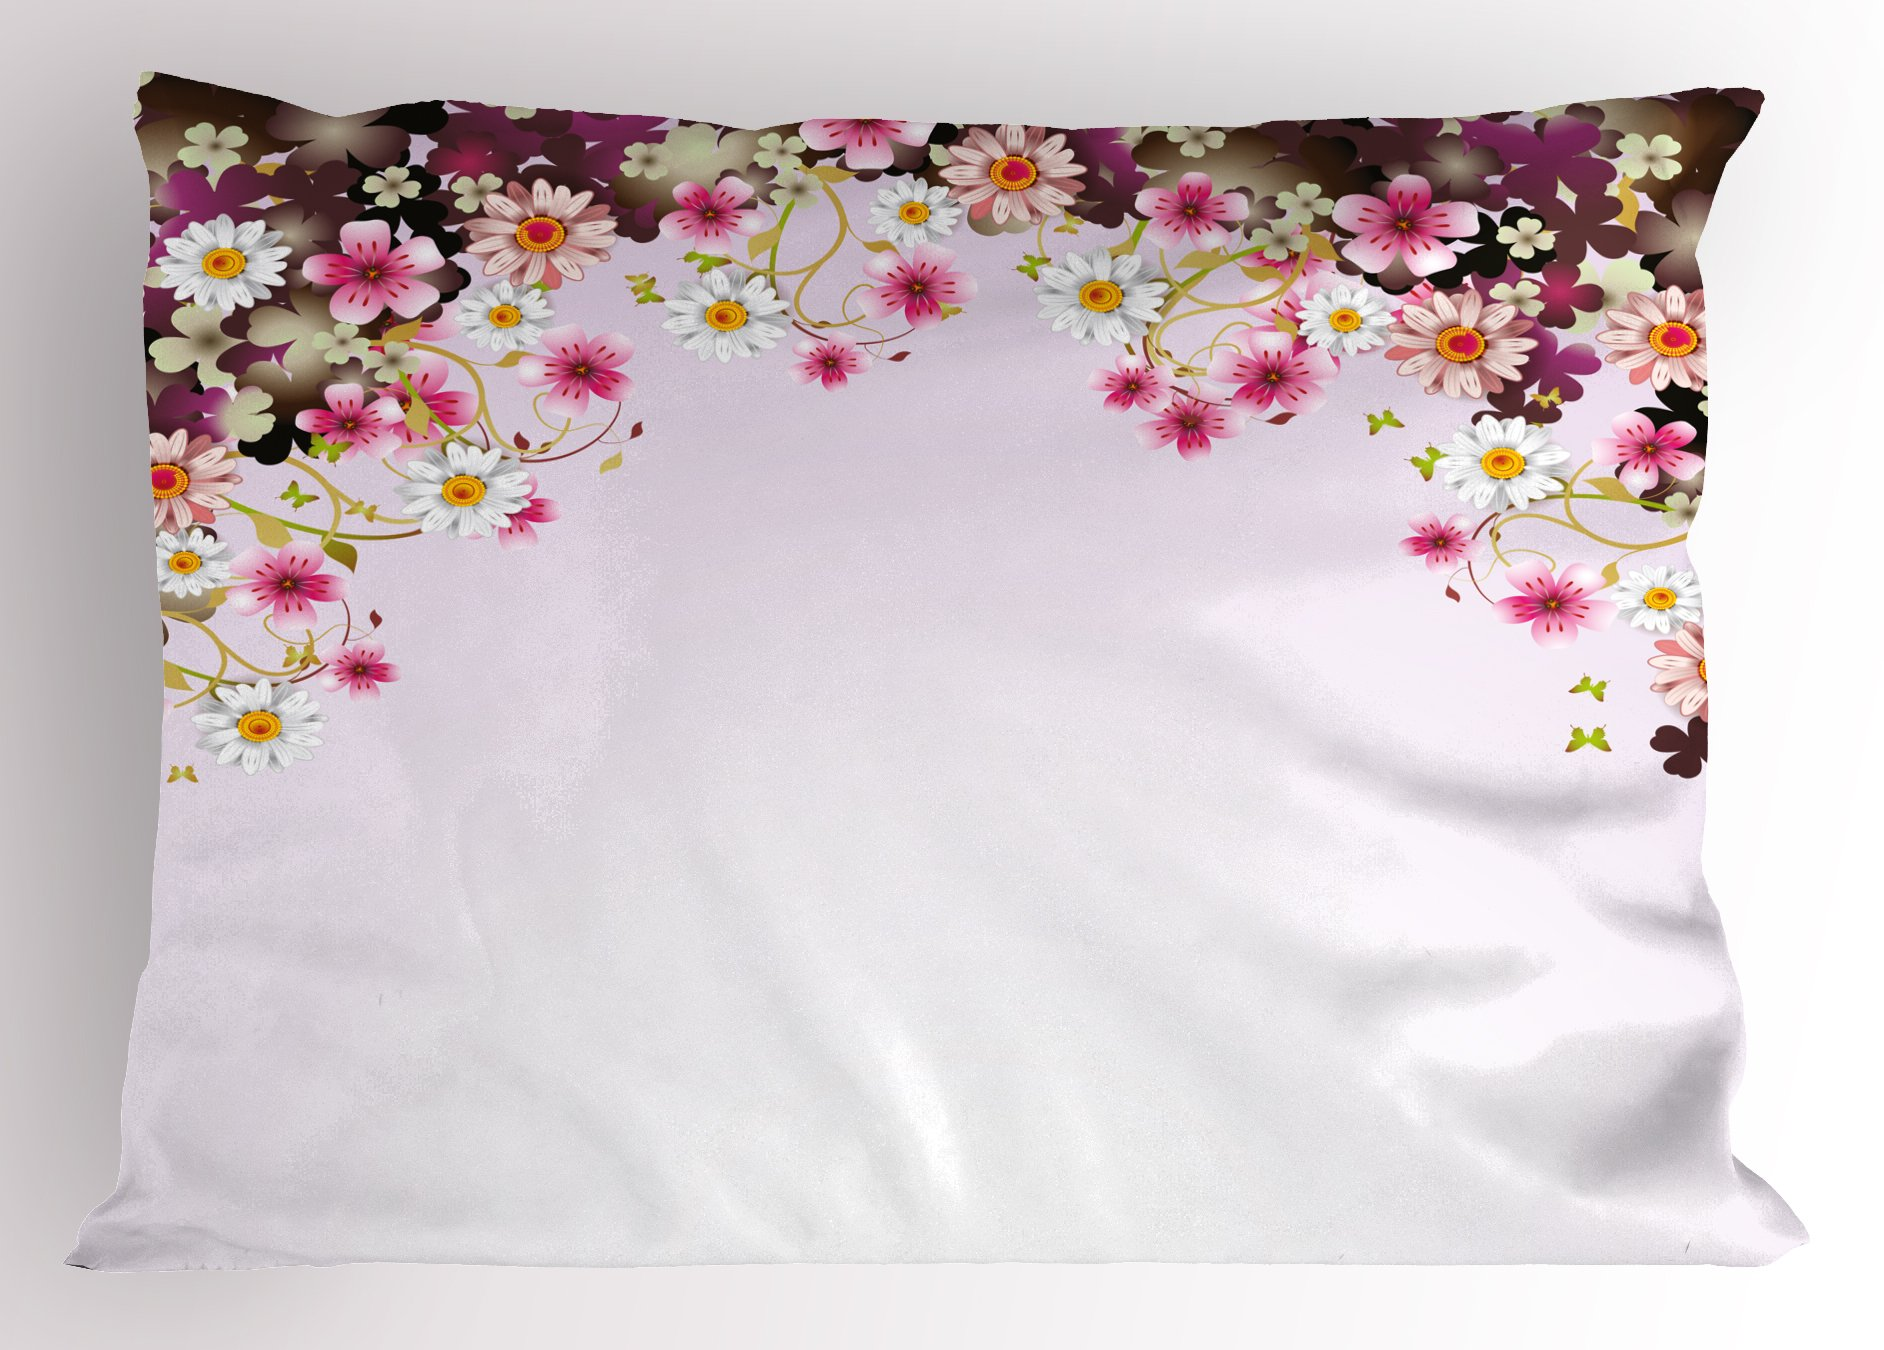 Lunarable Floral Pillow Sham, Daisy Bouquet Botany Petals with Butterfly Wedding Valentines Romance Design, Decorative Standard King Size Printed Pillowcase, 36 X 20 inches, Light Pink Purple